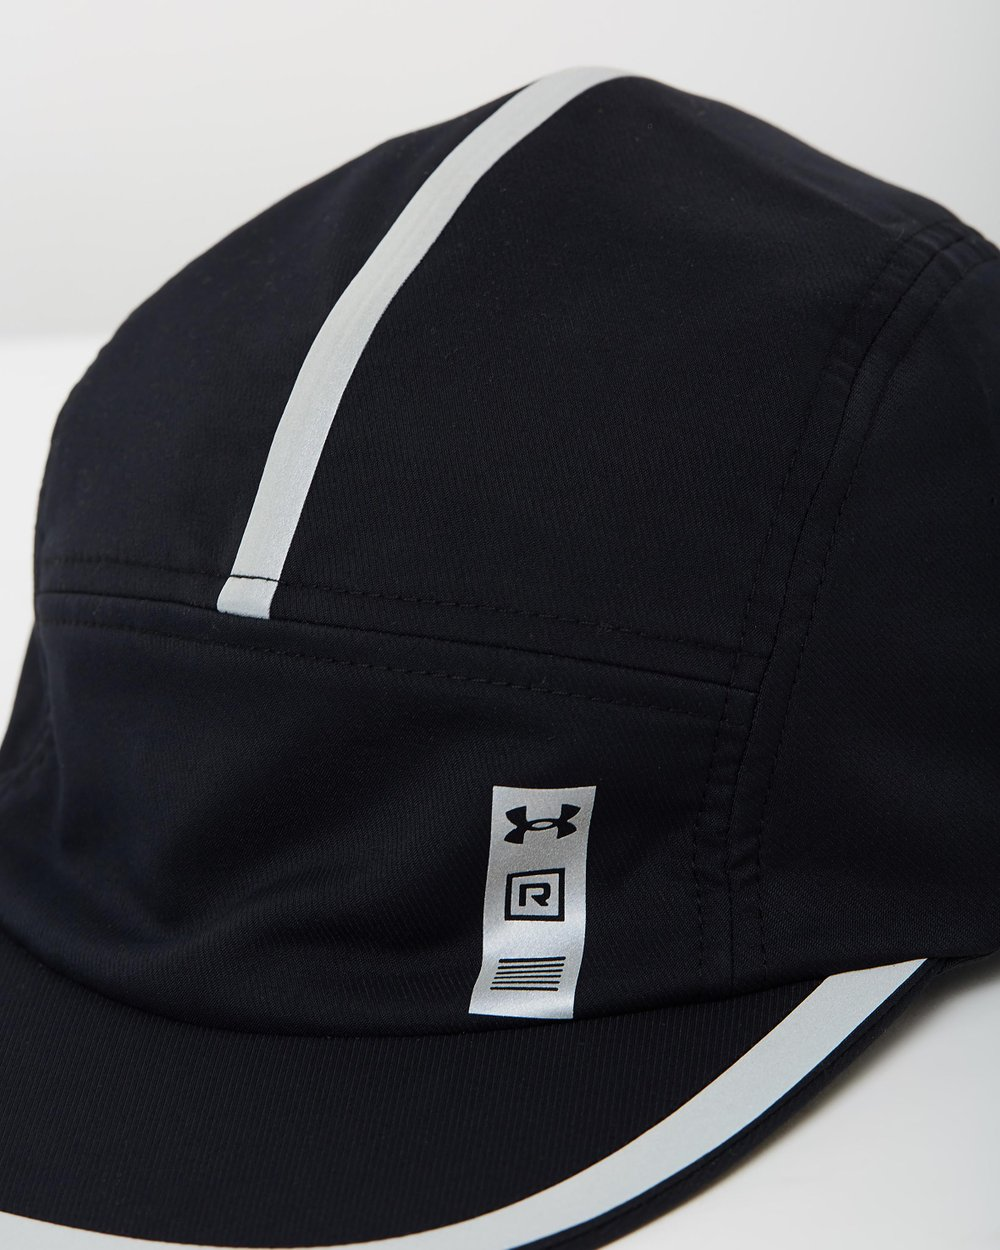 9a5c85eb866 TB Run Crew 2.0 Cap by Under Armour Online